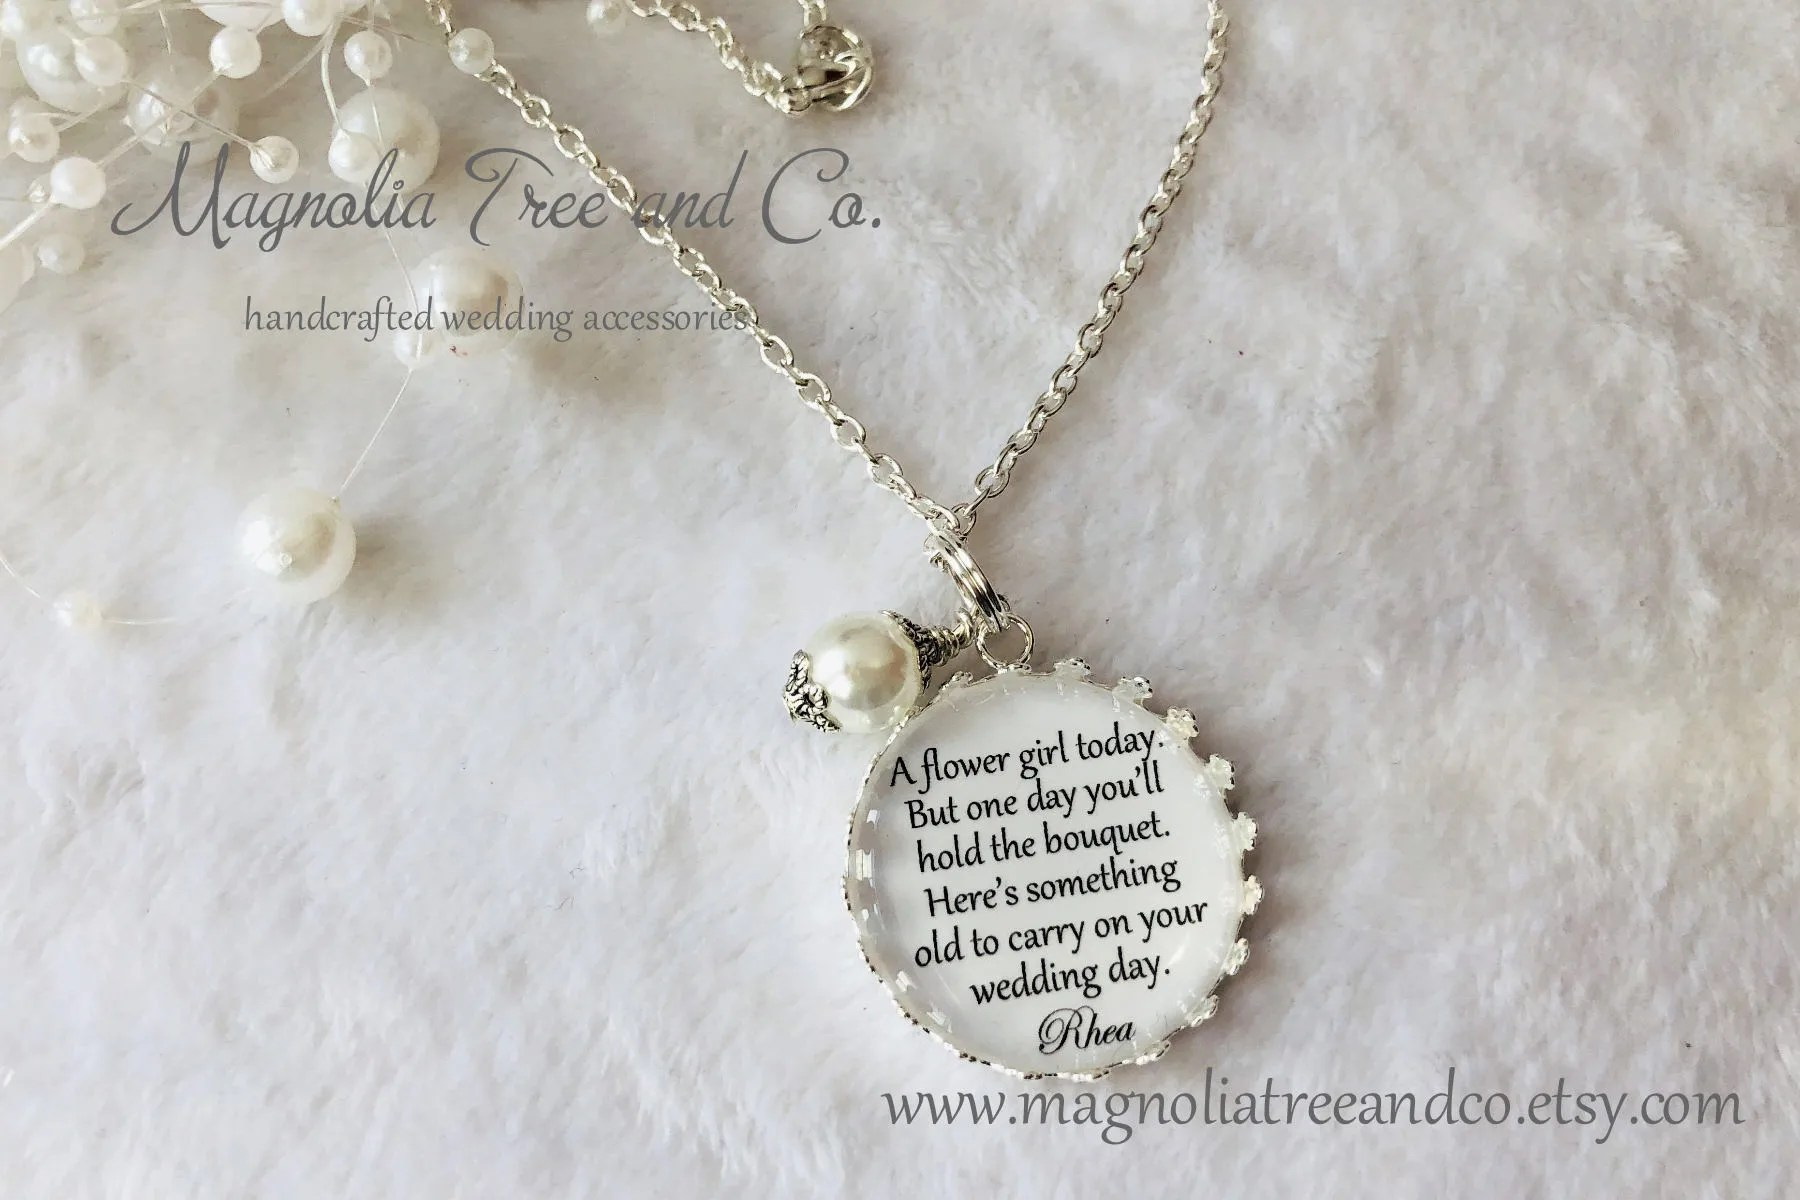 Flower Girl Necklace Bridesmaid Necklace Personalized Bridal image 3